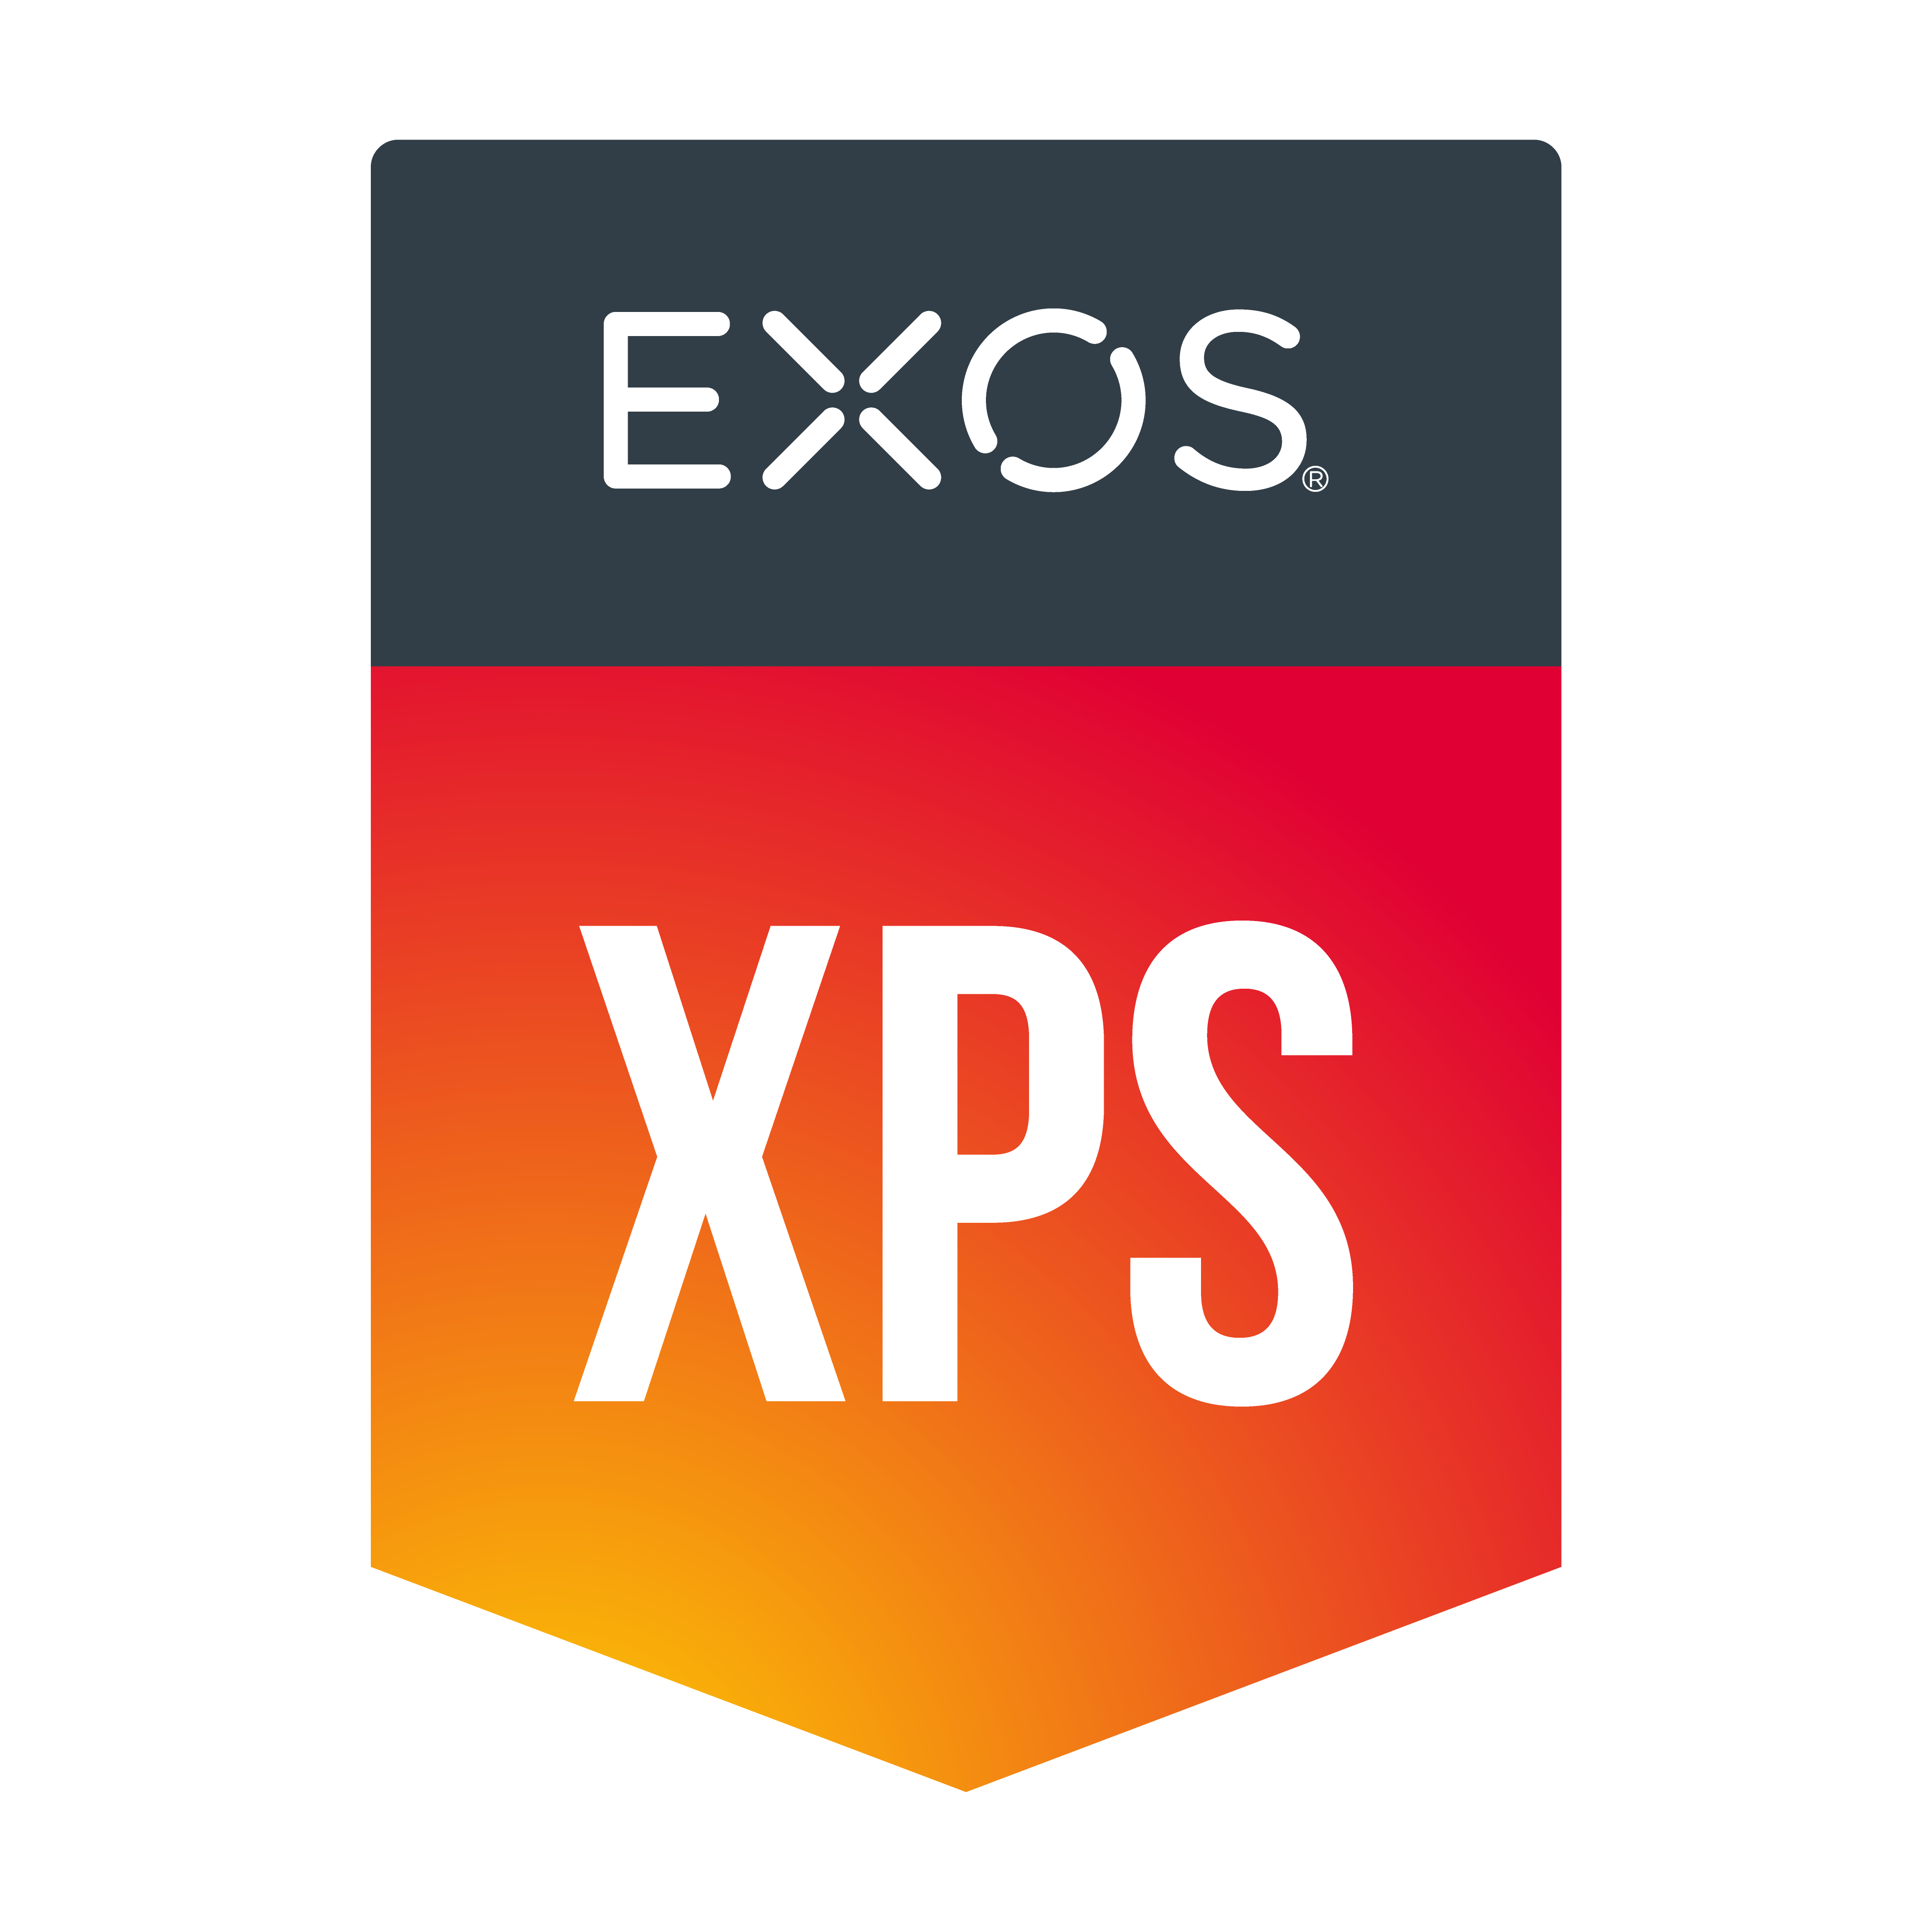 As an EXOS-Certified Performance Specialist, I've learned the systems and methodology of EXOS and how to apply it to your needs as an athlete/client.